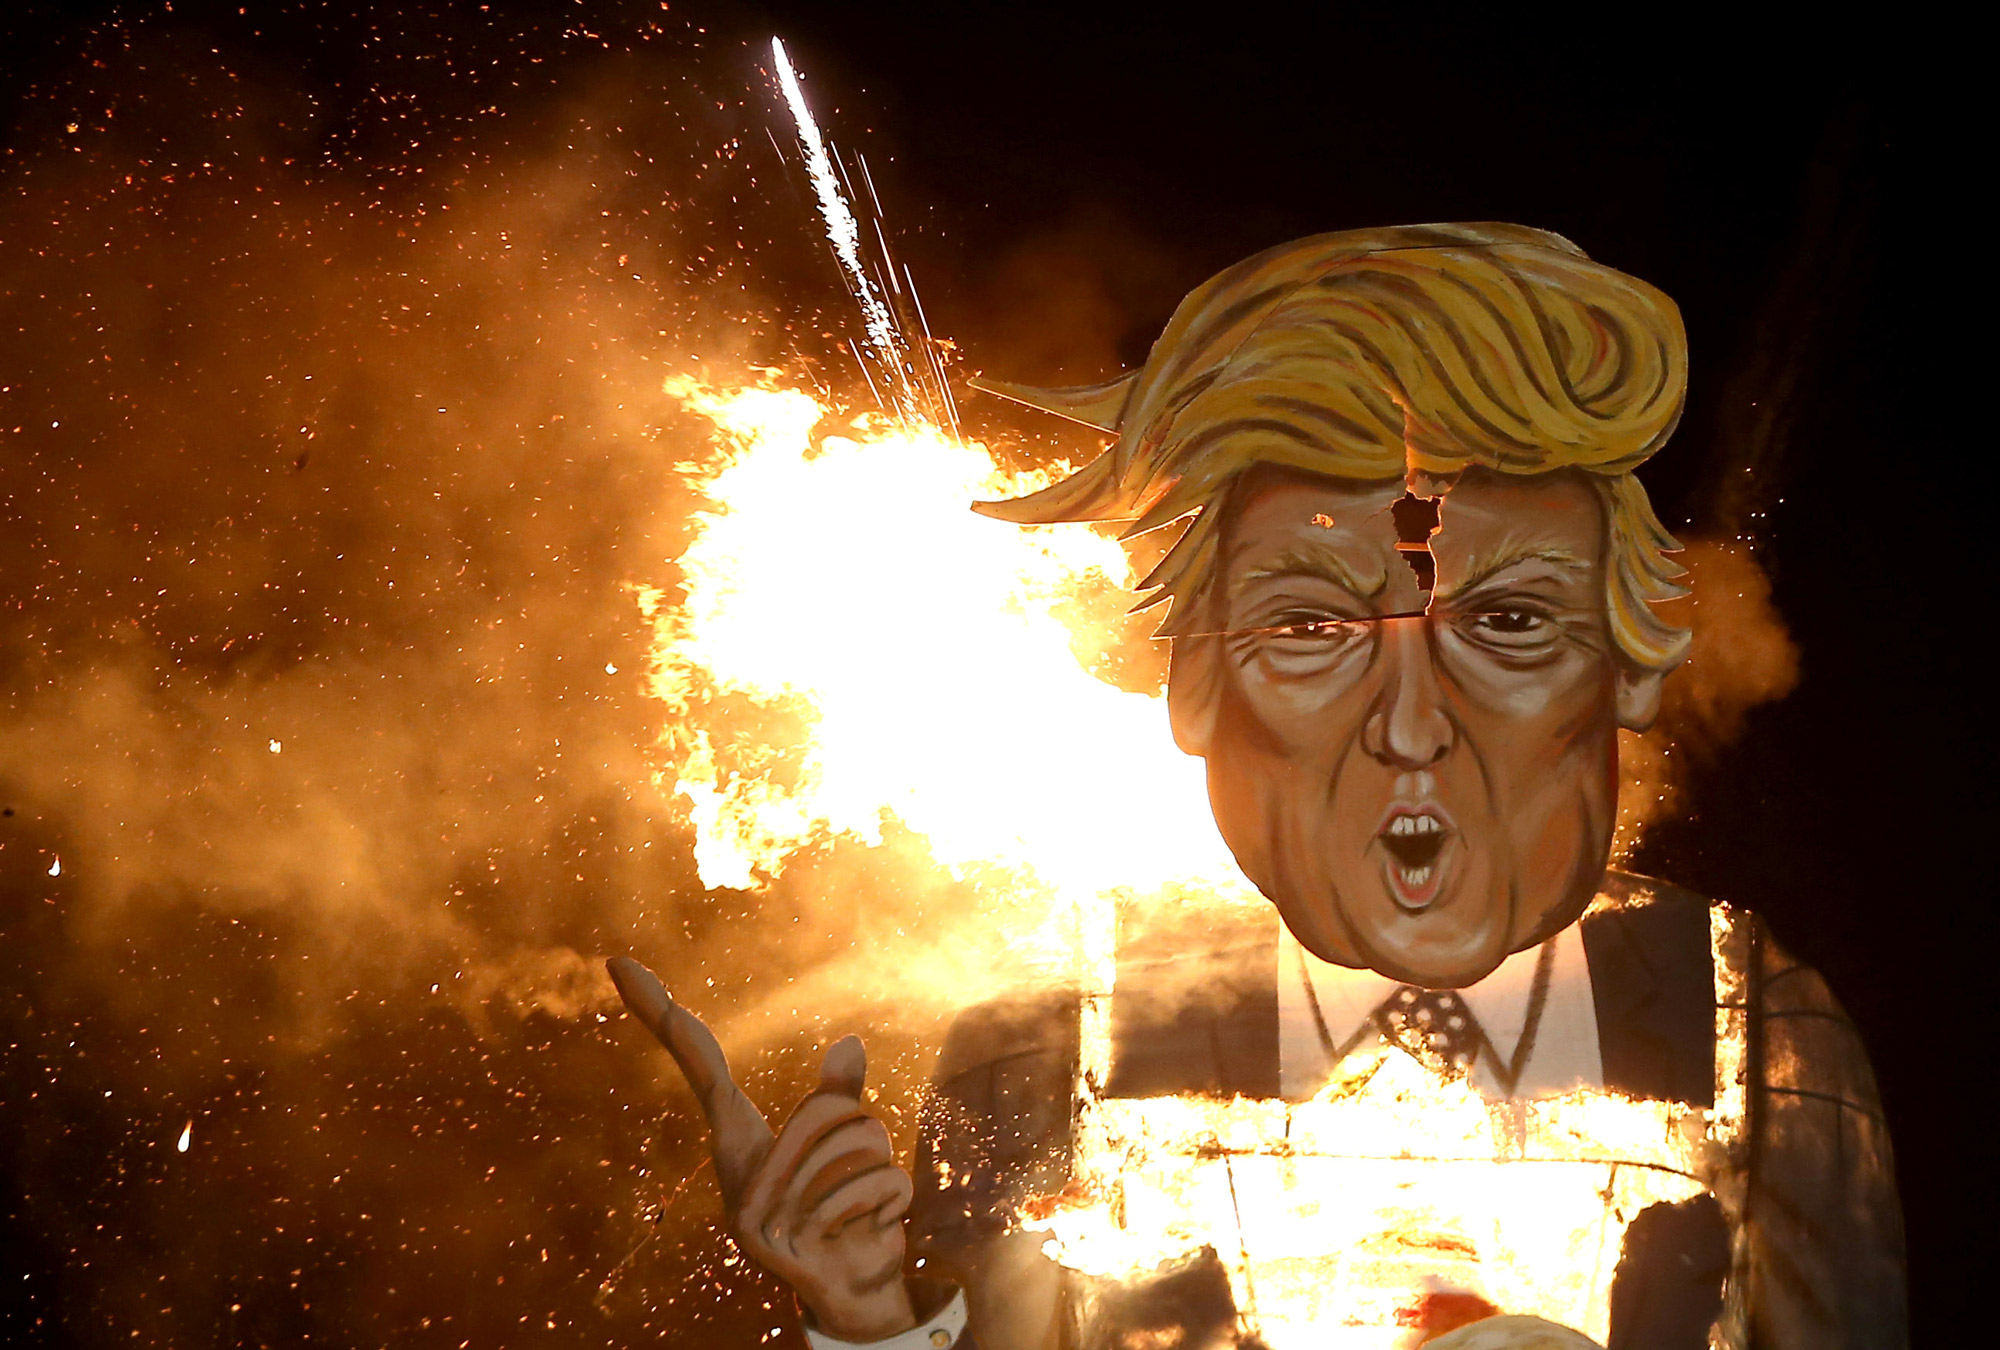 A burning effigy of Donald Trump.